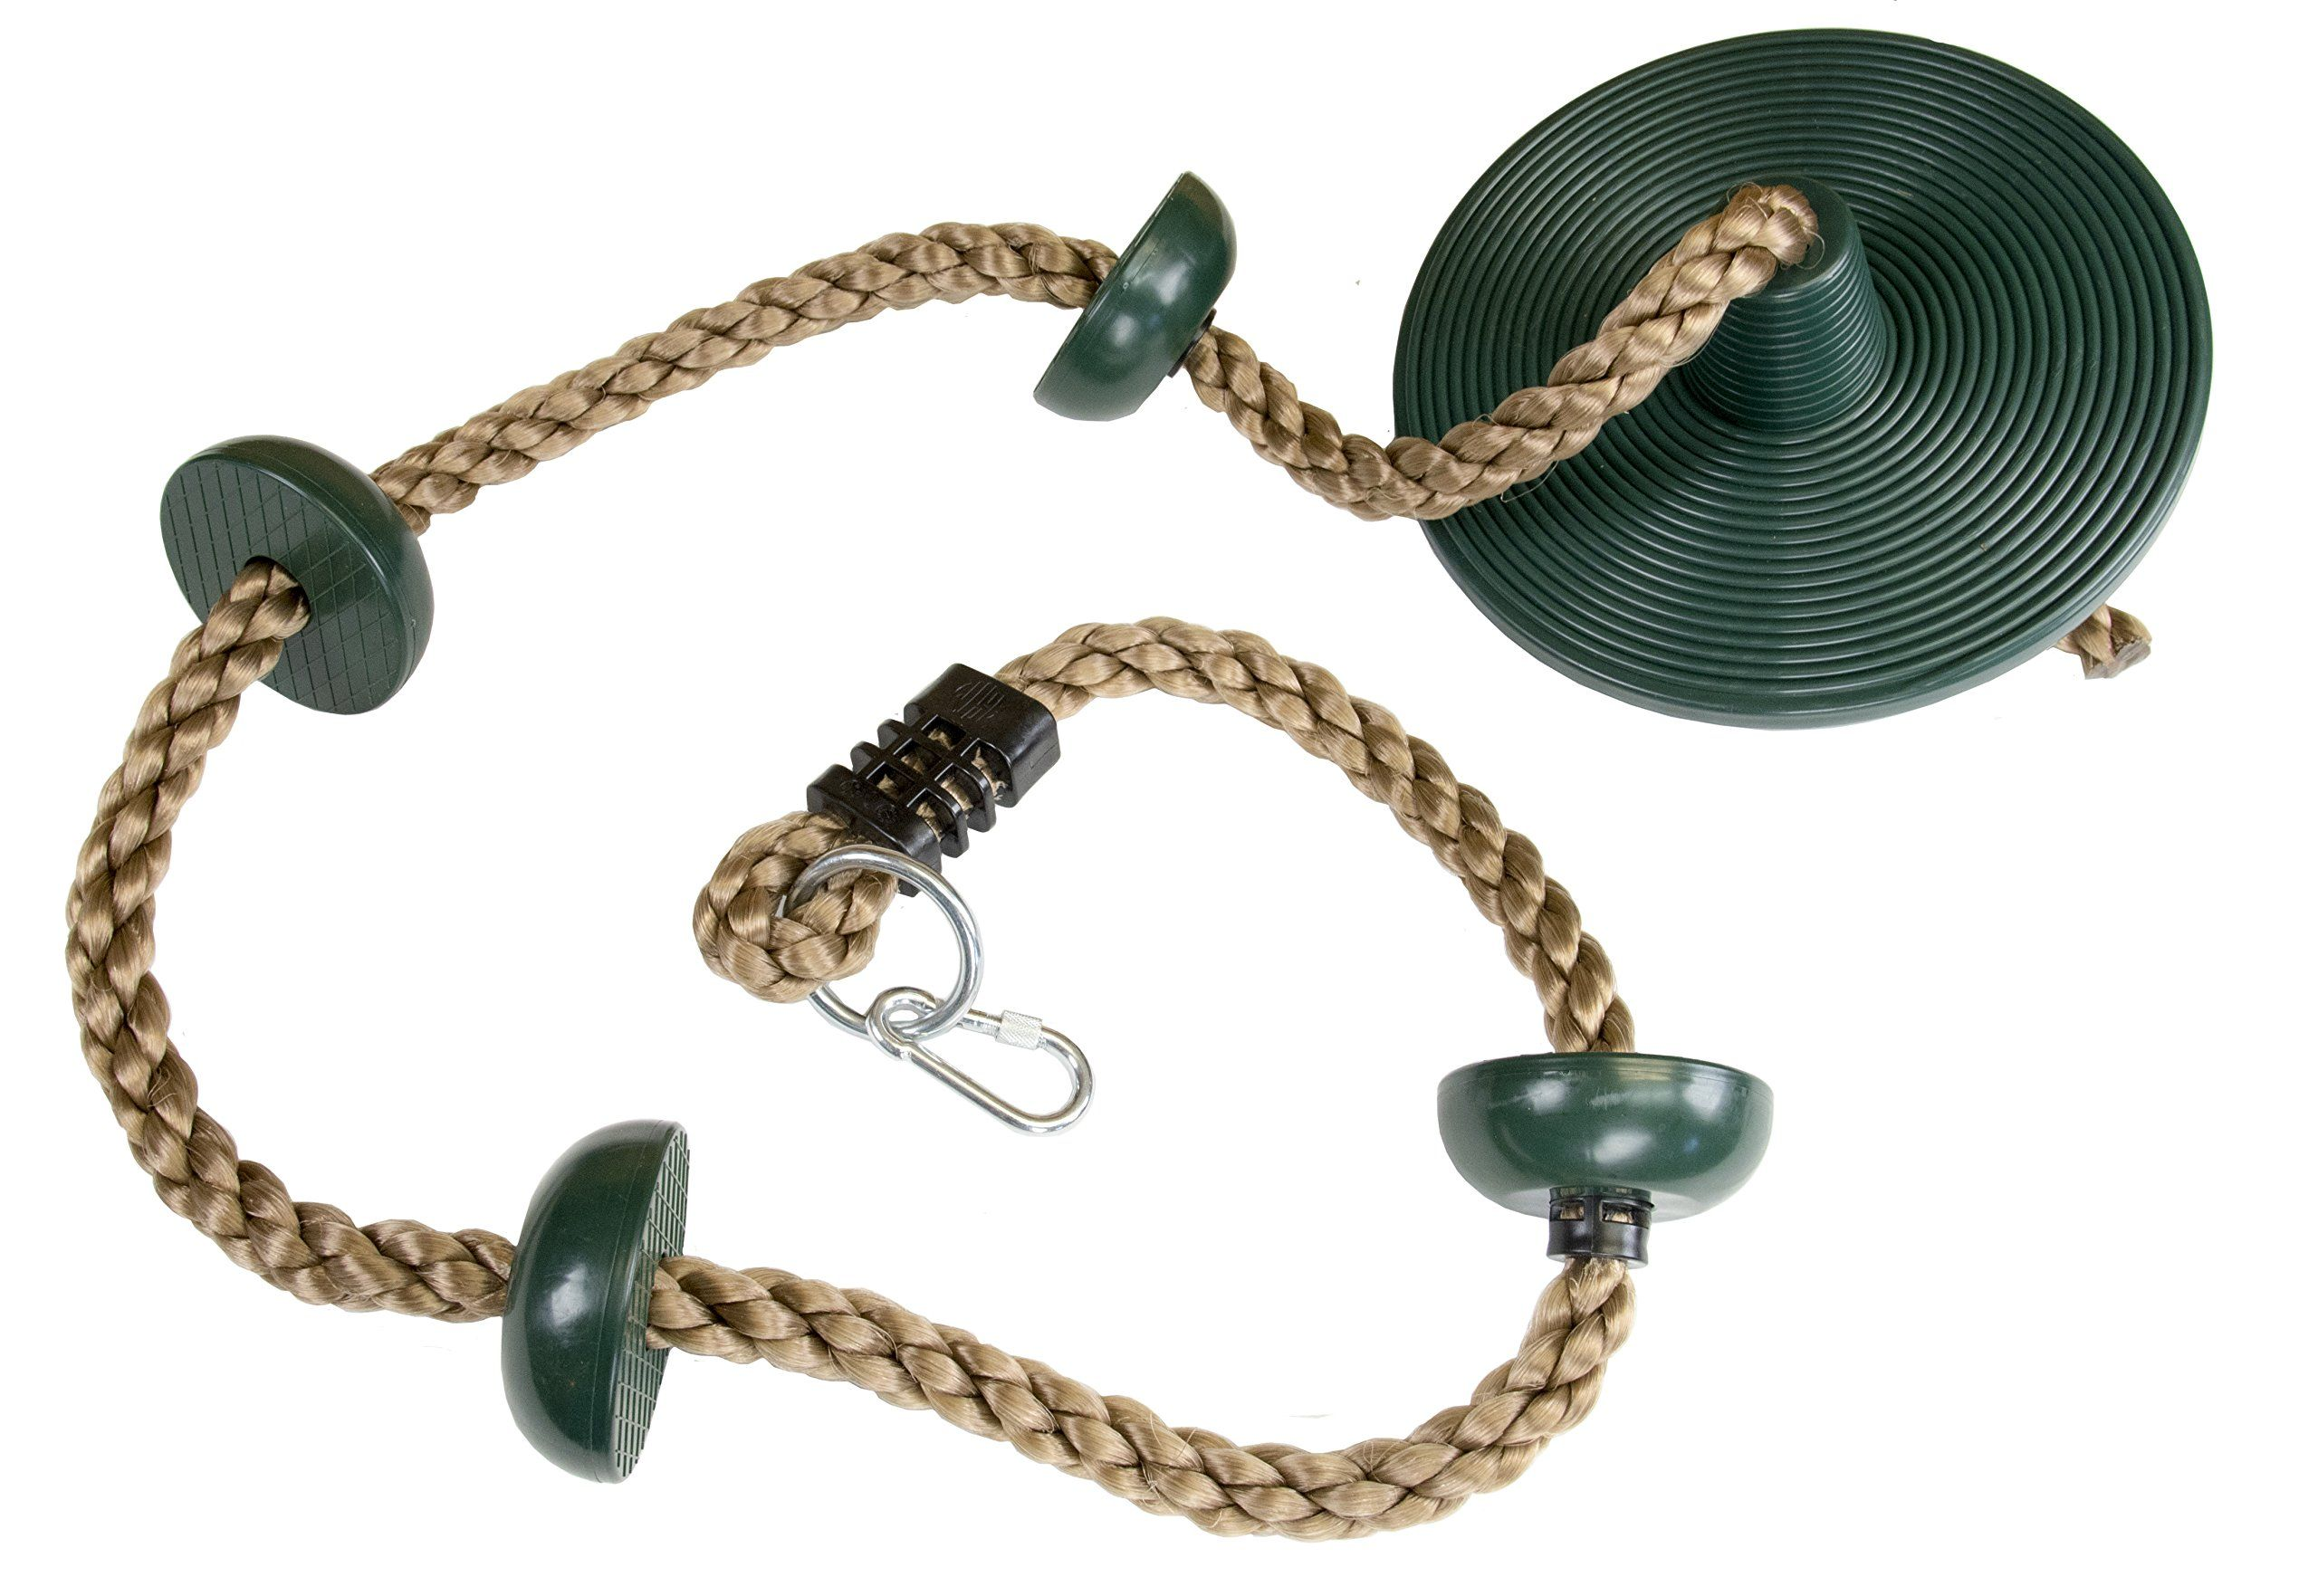 Climbing Rope With Small Platforms And Disc Swing Seat Must Have